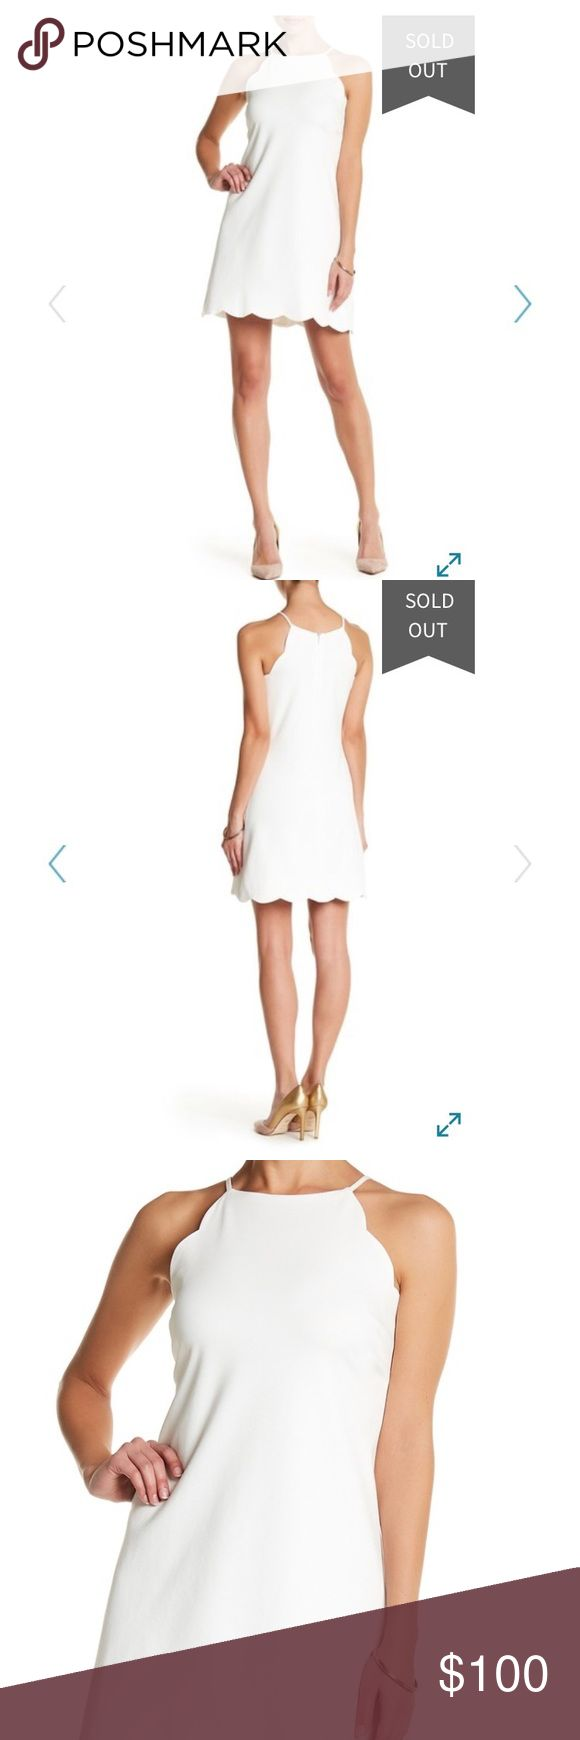 Nordstrom Rack Love Ady Scalloped Trim Shift Dress NWOT. NEVER WORN. Bought for graduation and ended up wearing a different dress instead. Purchased online from Nordstrom Rack. Love Ady Scalloped Trim White Shift Dress. Zips in back. Size XS. Nordstrom Dresses